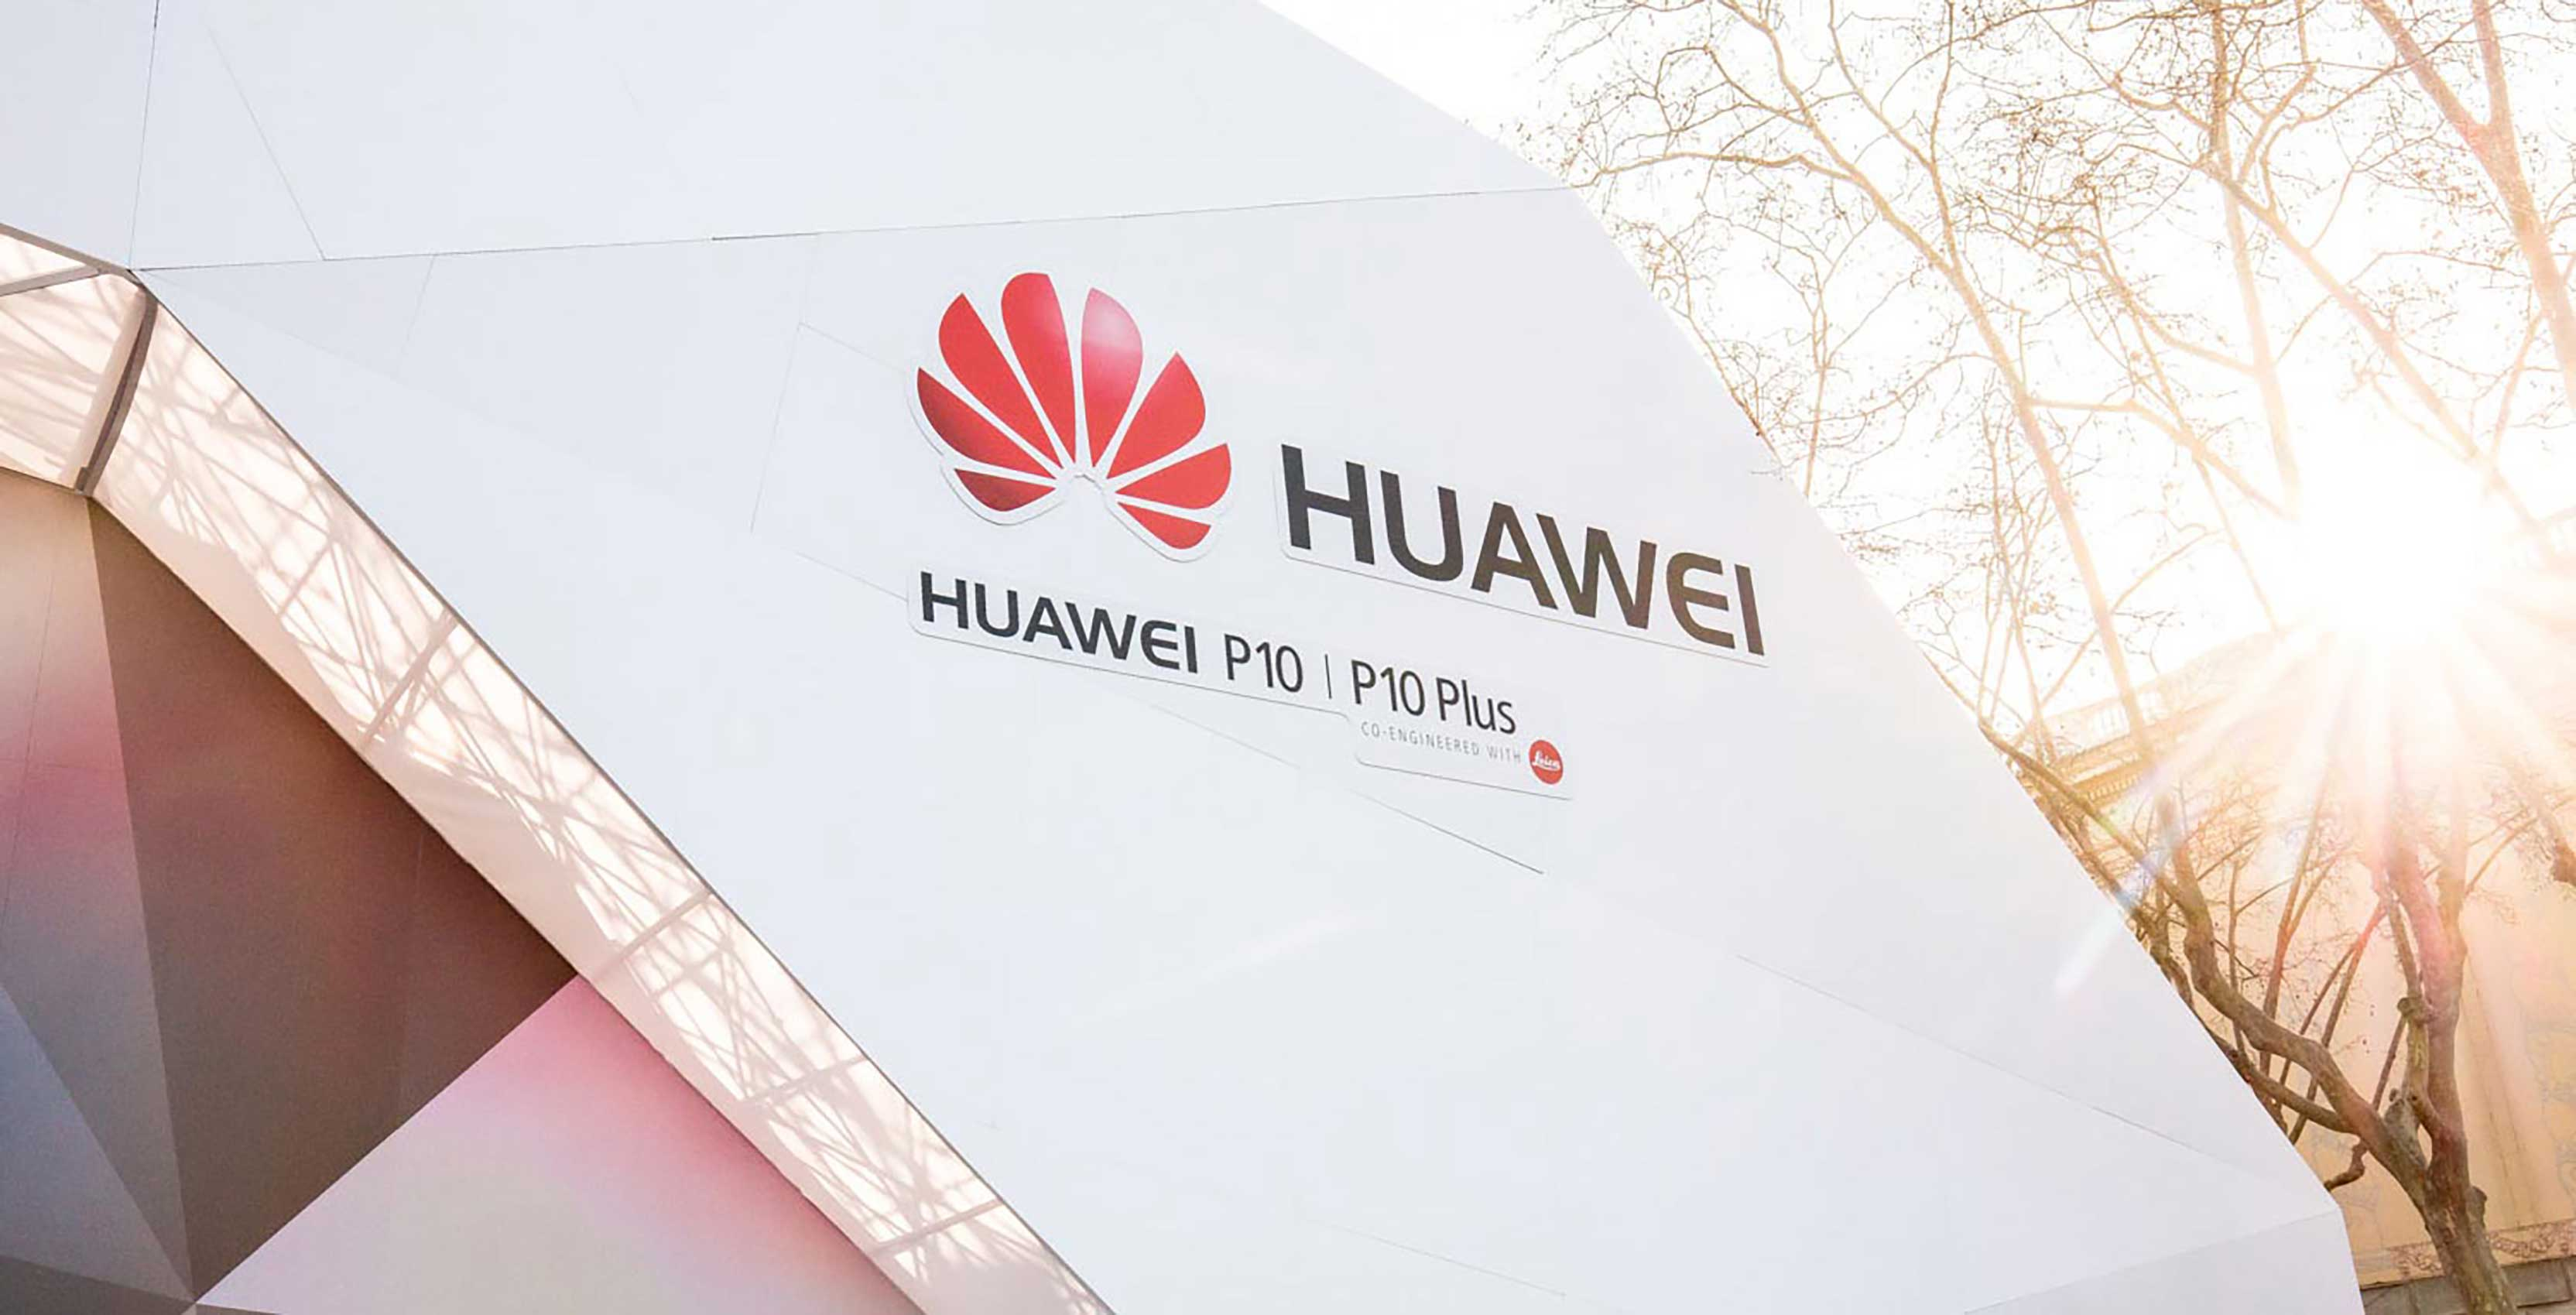 Huawei beat Apple in sales of smartphones